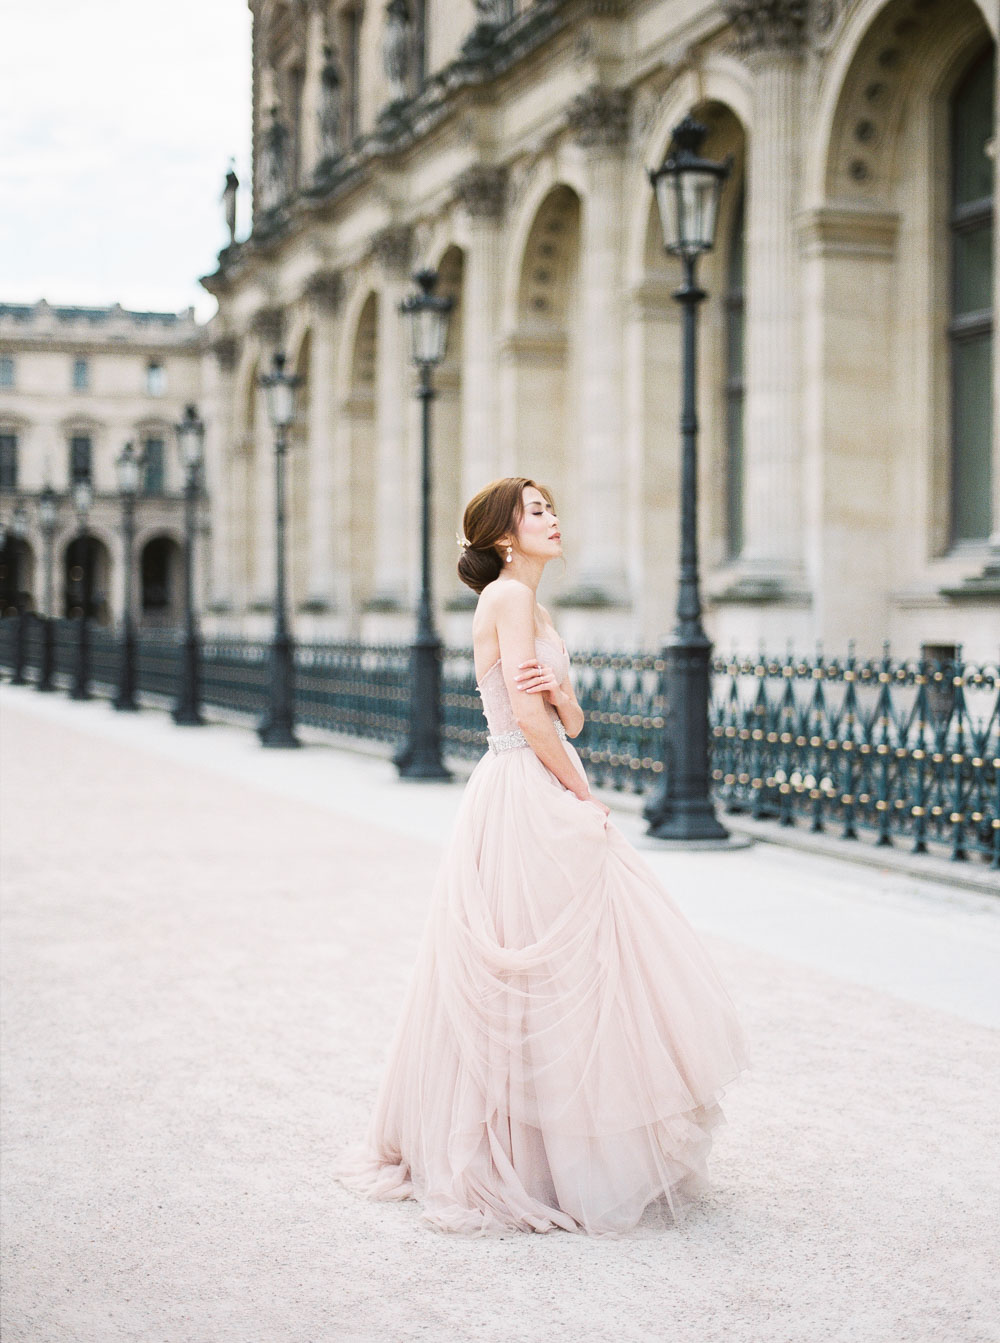 Paris pre-wedding pink wedding dress inspiration 巴黎婚紗攝影